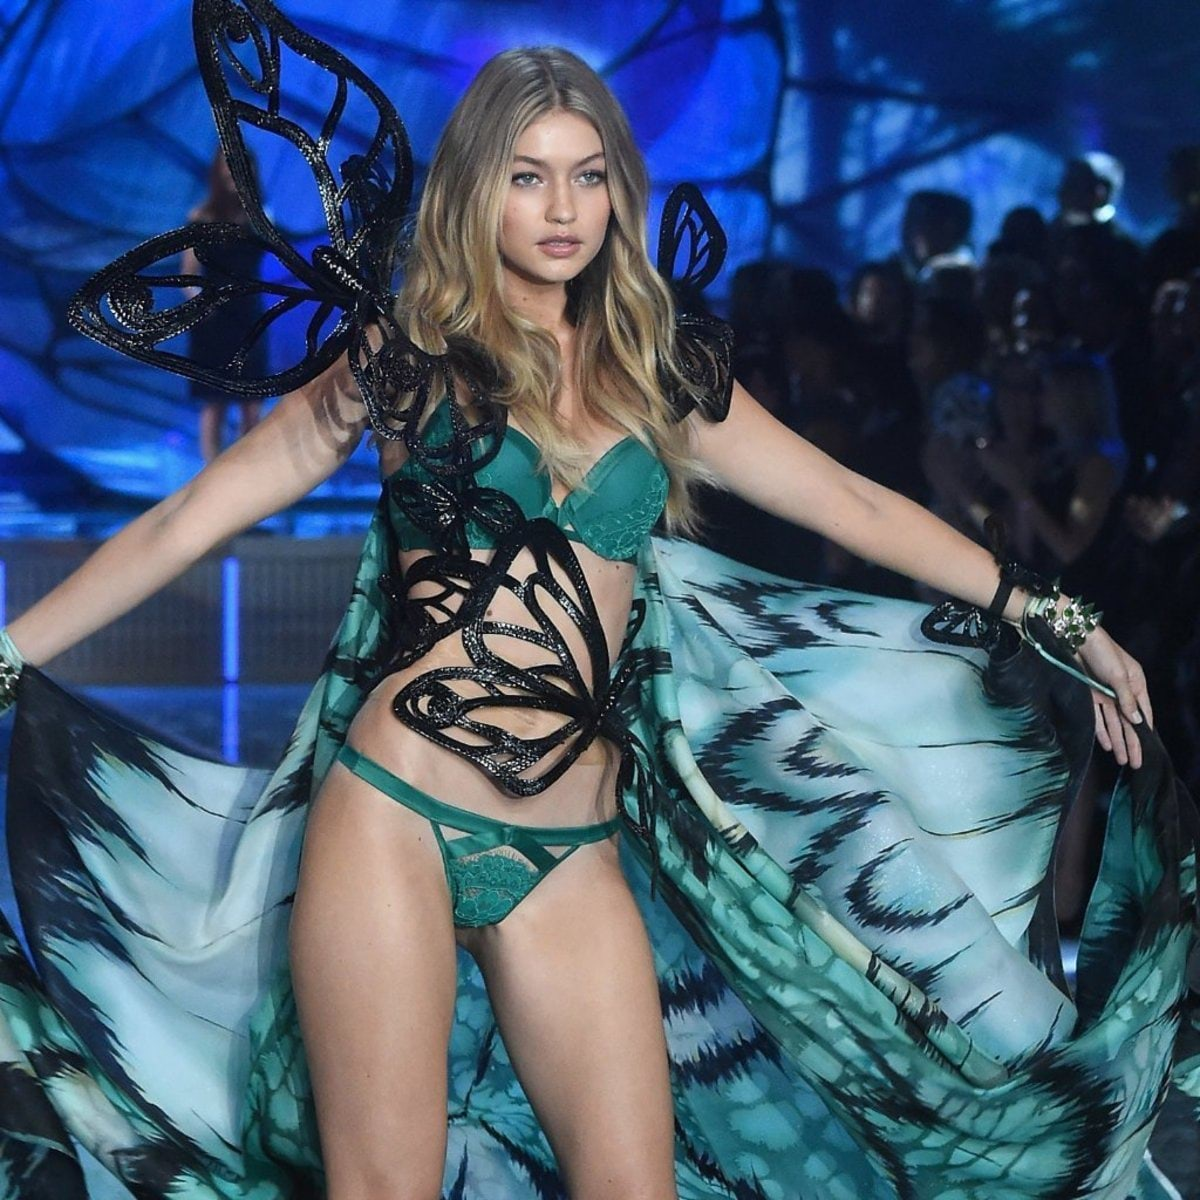 Gigi-Hadid-Victoria-Secret-Fashion-Show-2015